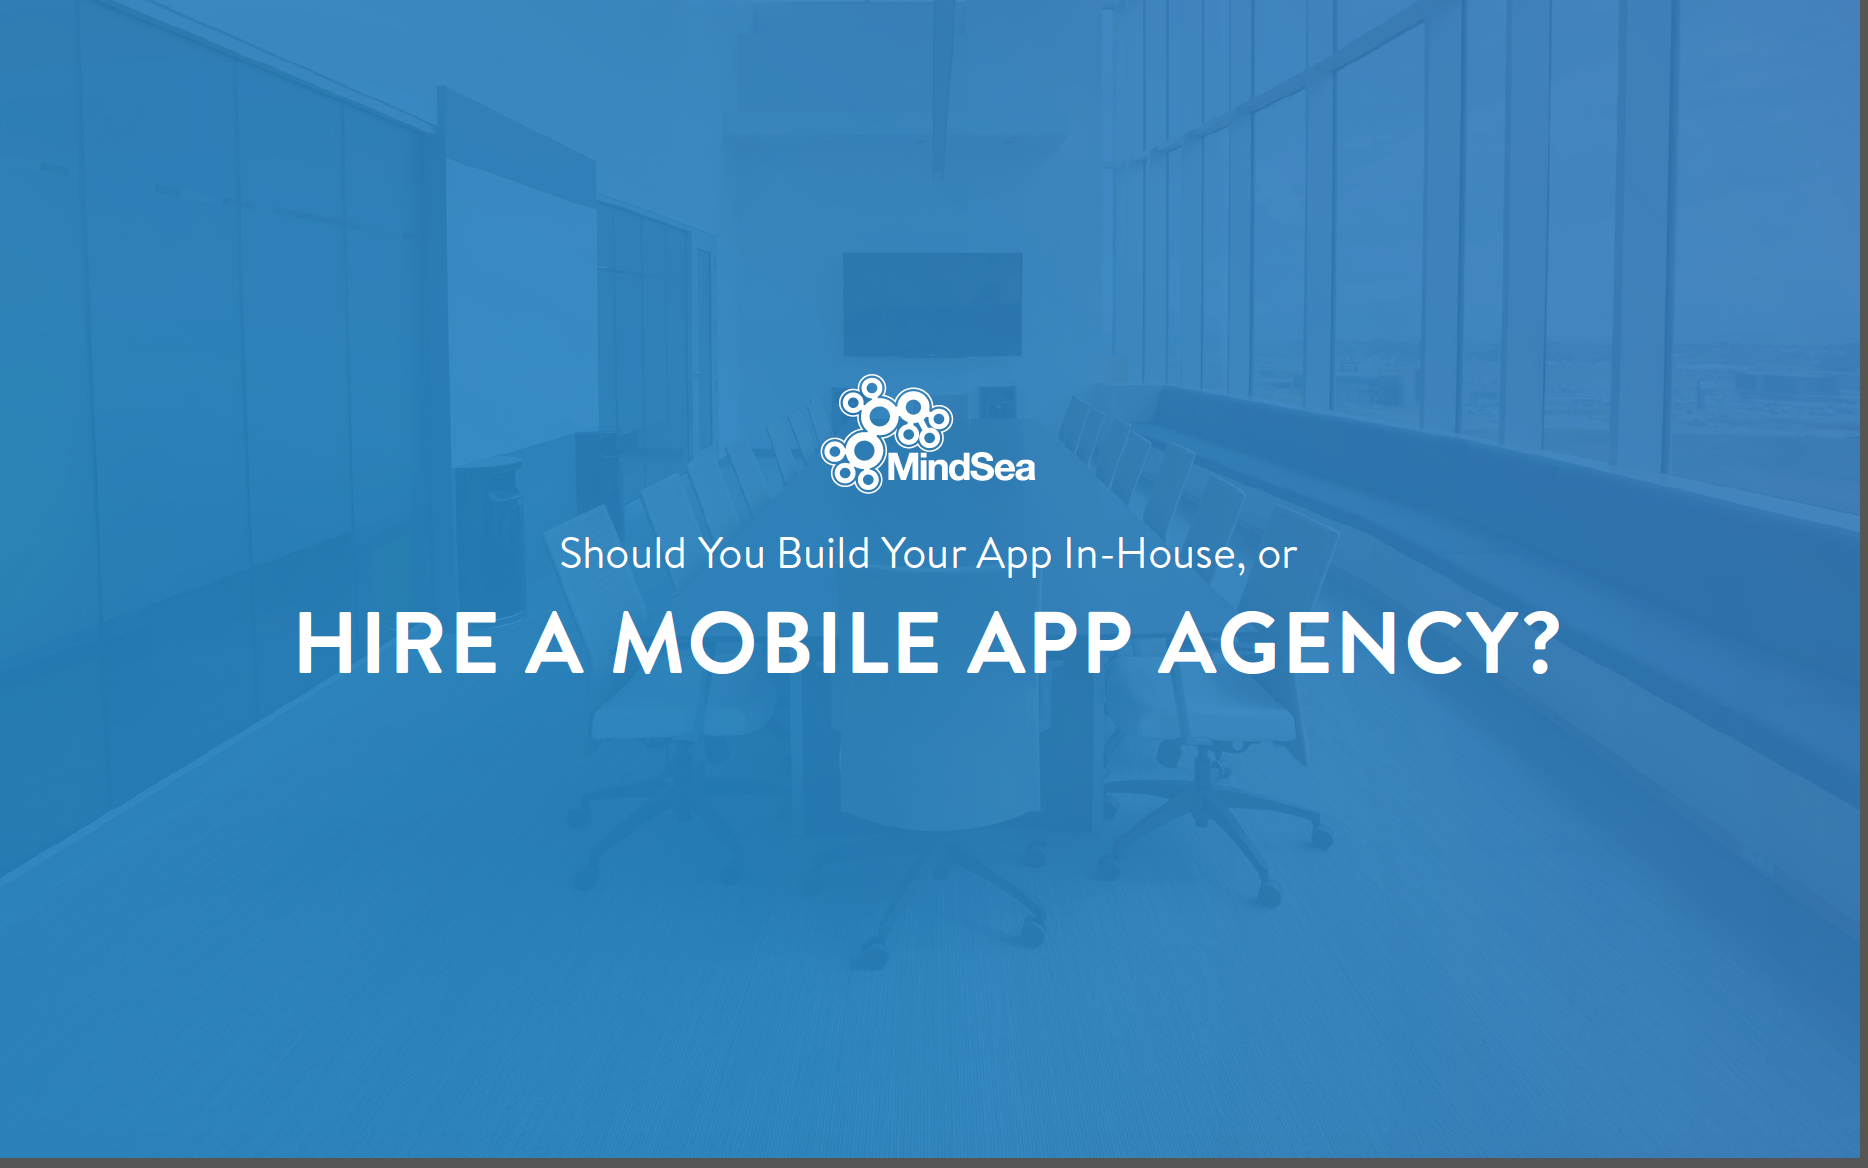 Hire A Mobile App Agency.png